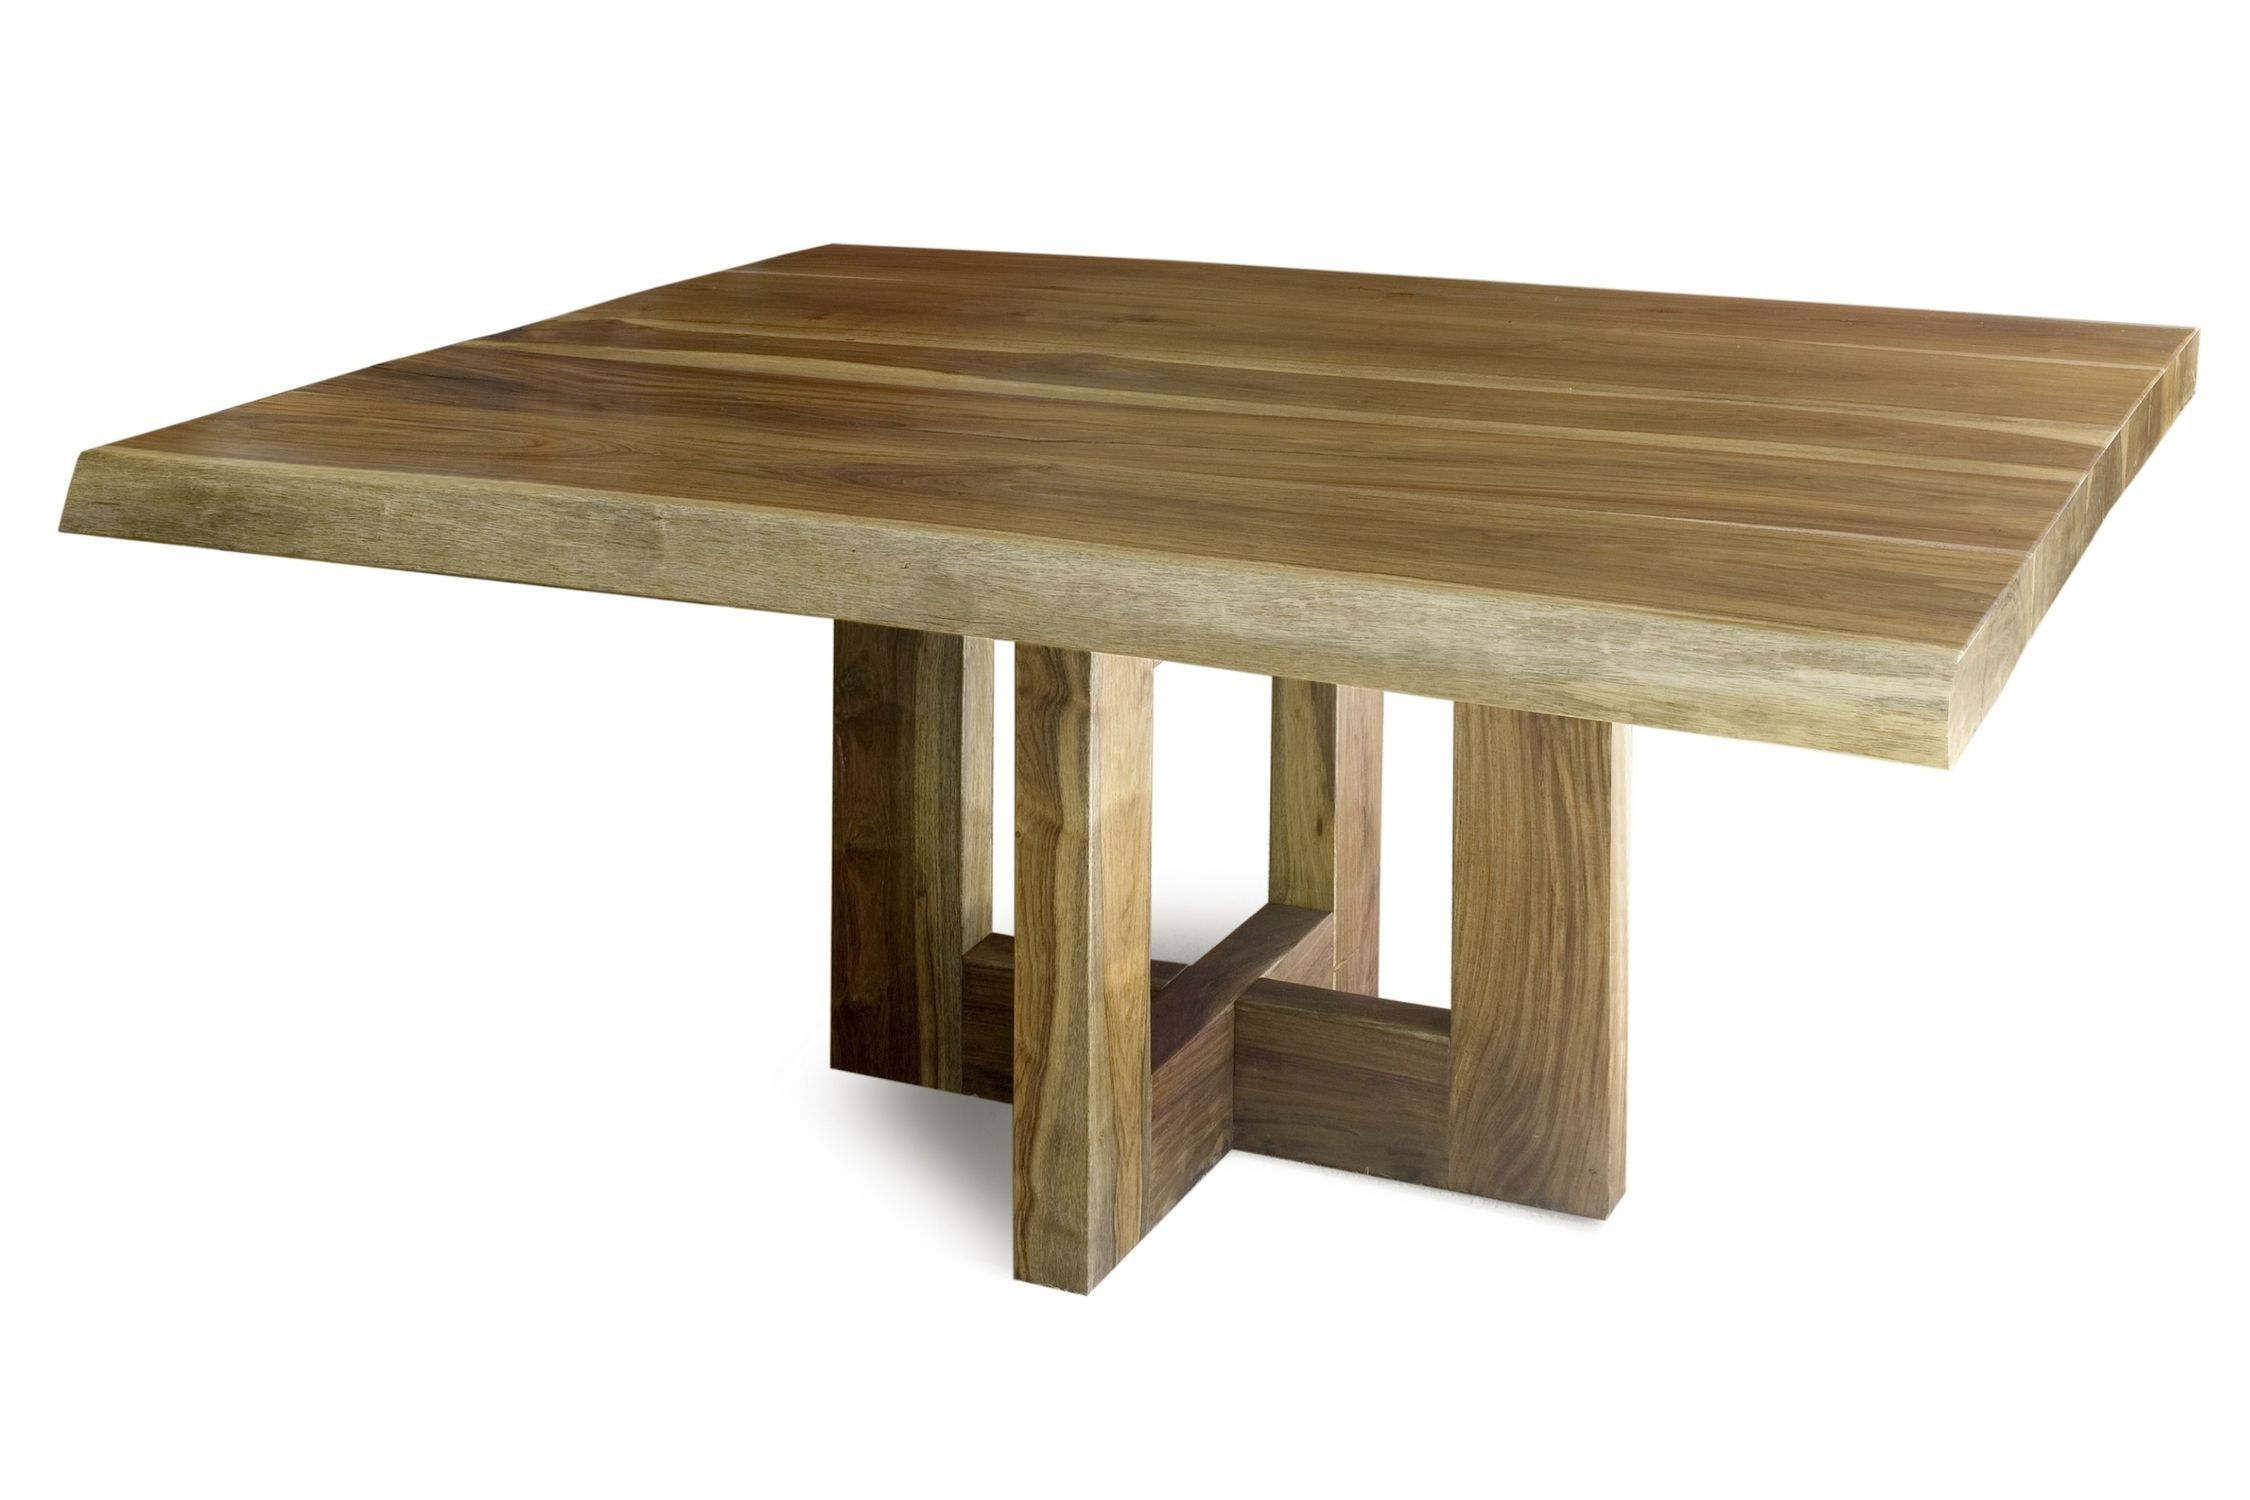 Contemporary rectangle unfinished reclaimed wood table for for Square dining table designs